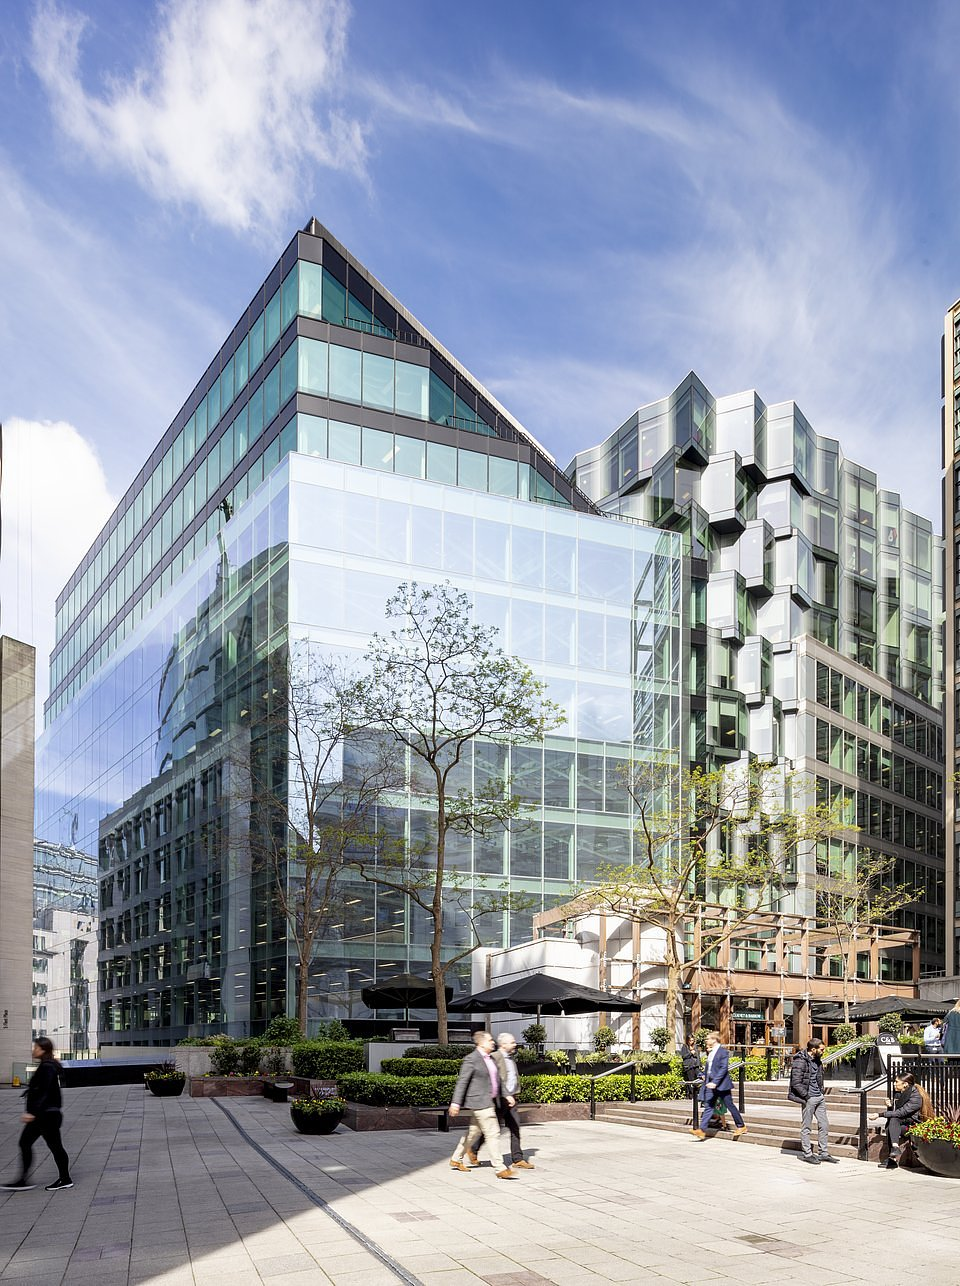 20 Farringdon Street has been fully leased by HB Reavis and is home to a thriving business community including HB Reavis' own co-work concept HubHub, as well as The Berkeley Partnership and TMF Group.